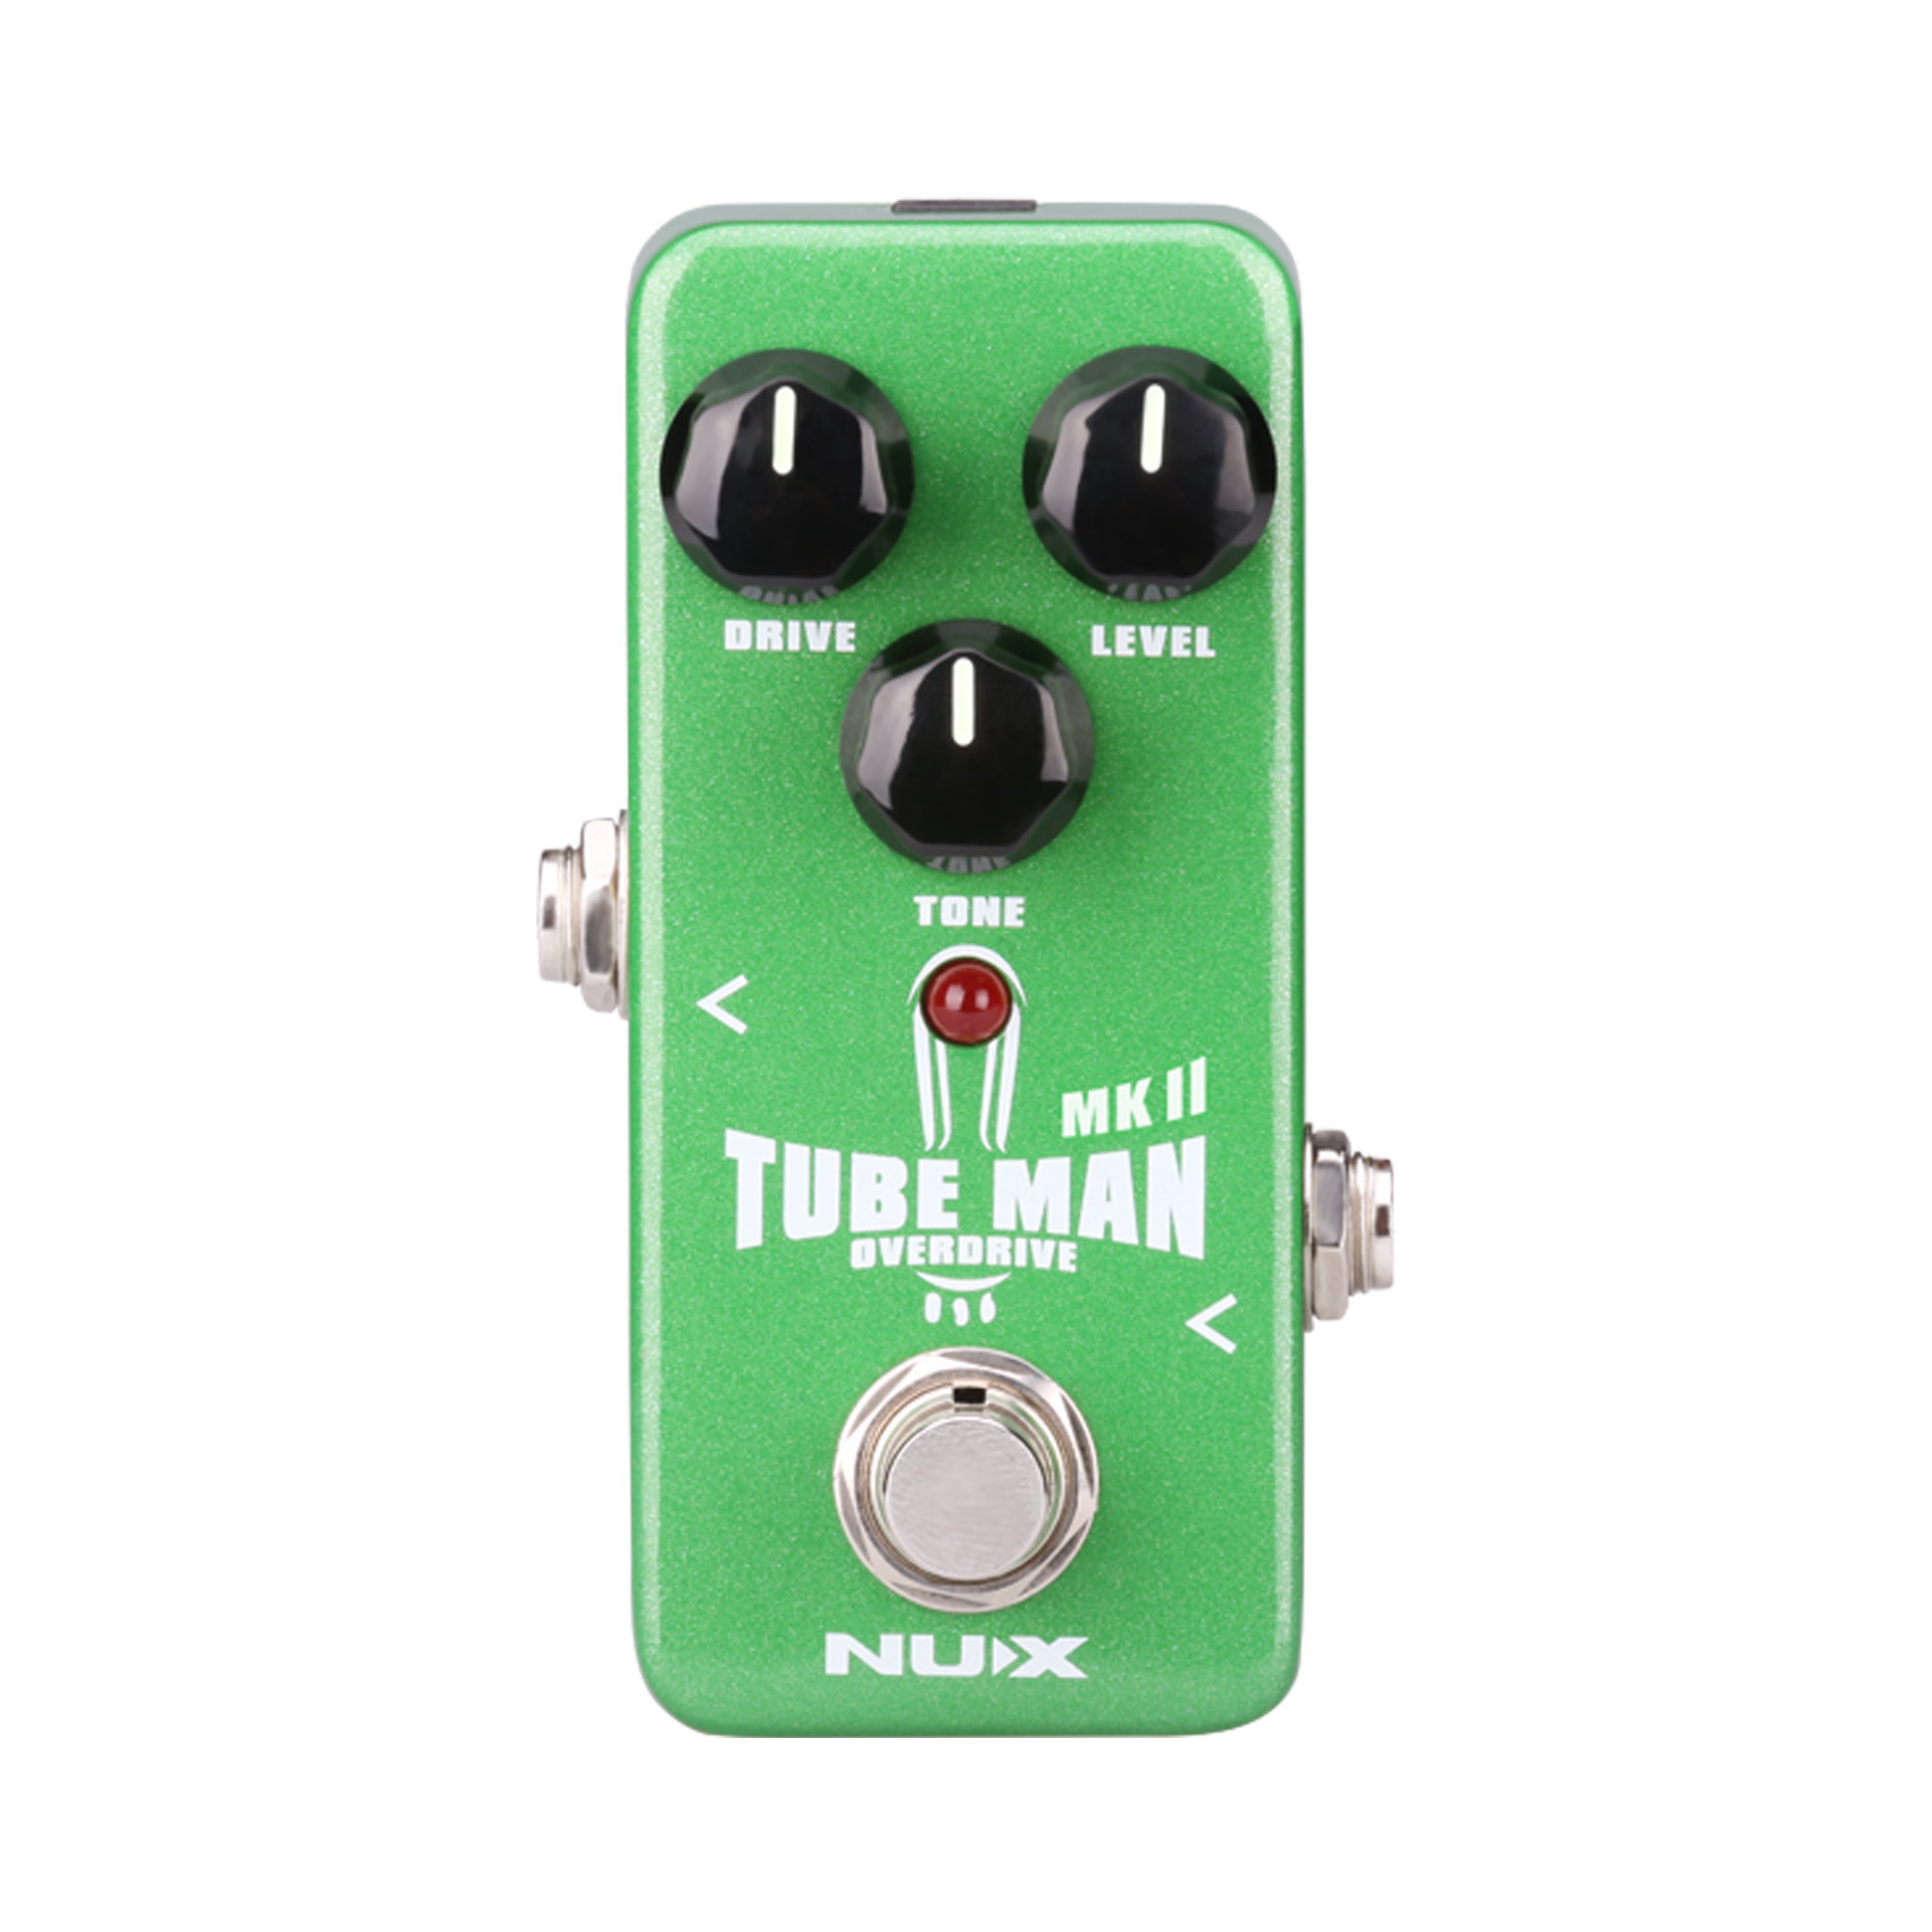 NUX Tube Man MKII Overdrive Guitar Effect Pedal Mini Core Series Stompbox with Tube-like Sound Original Tube Screamer Pedals nux pmx 2 multi channel mini mixer 30